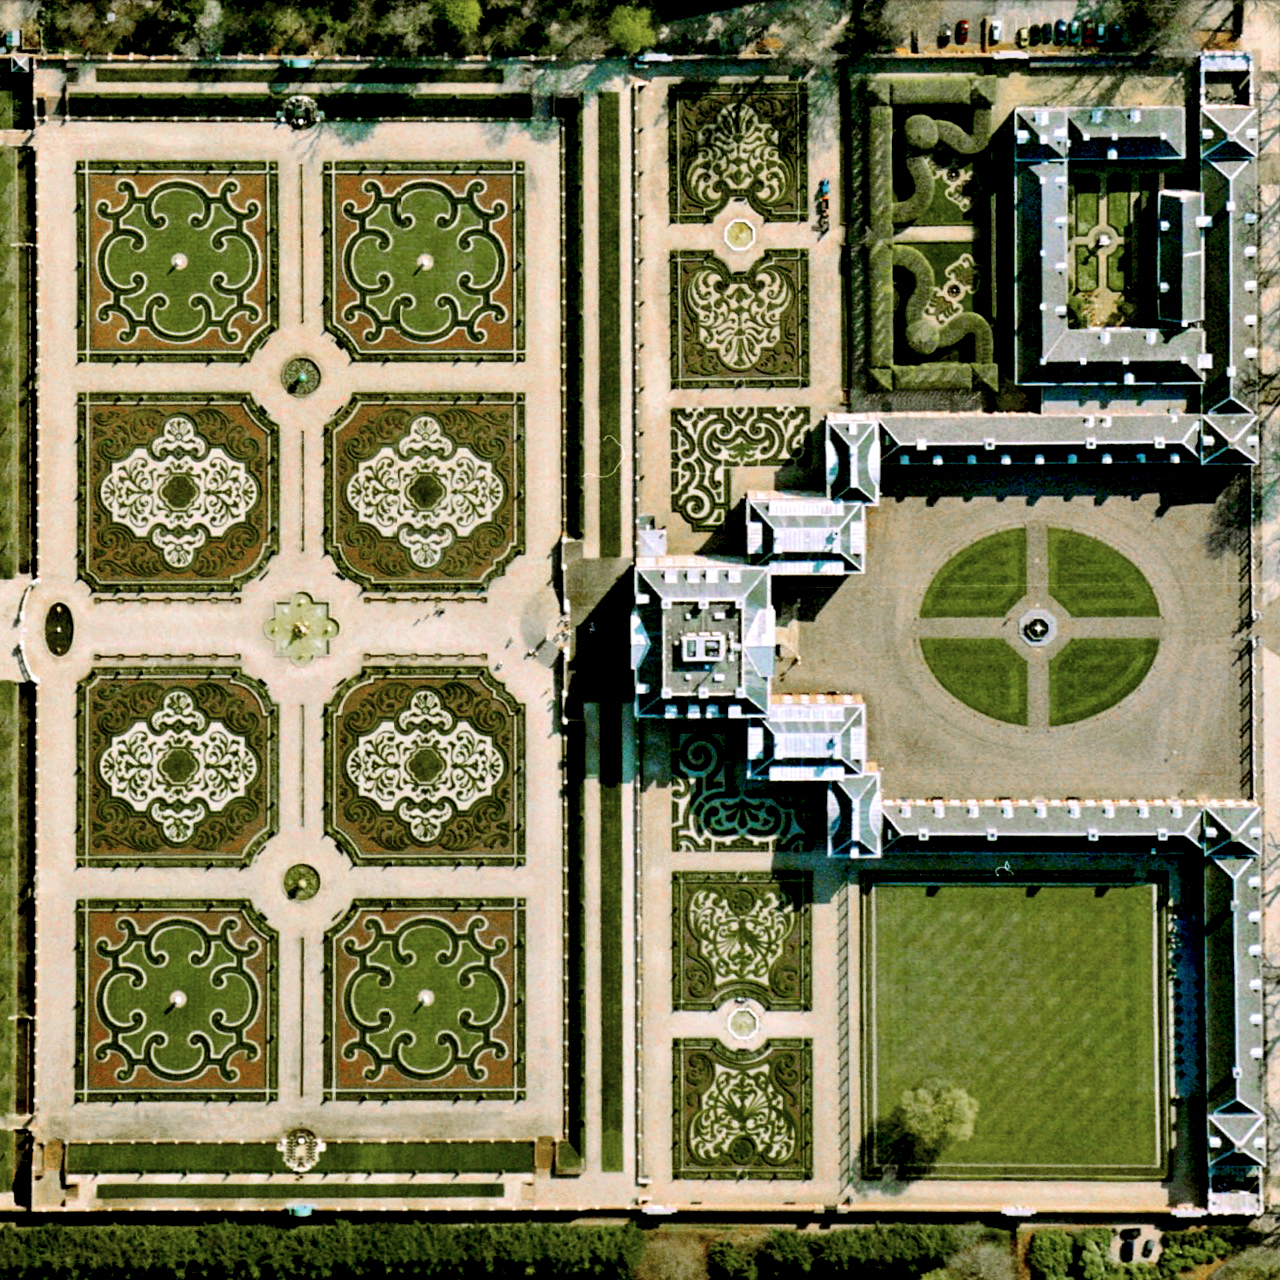 """Het Loo Palace is located in Apeldoorn, Netherlands. """"The Great Garden,"""" situated behind the residence, follows the general Baroque landscape design formula: perfect symmetry, axial layout with radiating gravel walks, parterres with fountains, basins, and statues.    52.234167°N, 5.945833°E"""